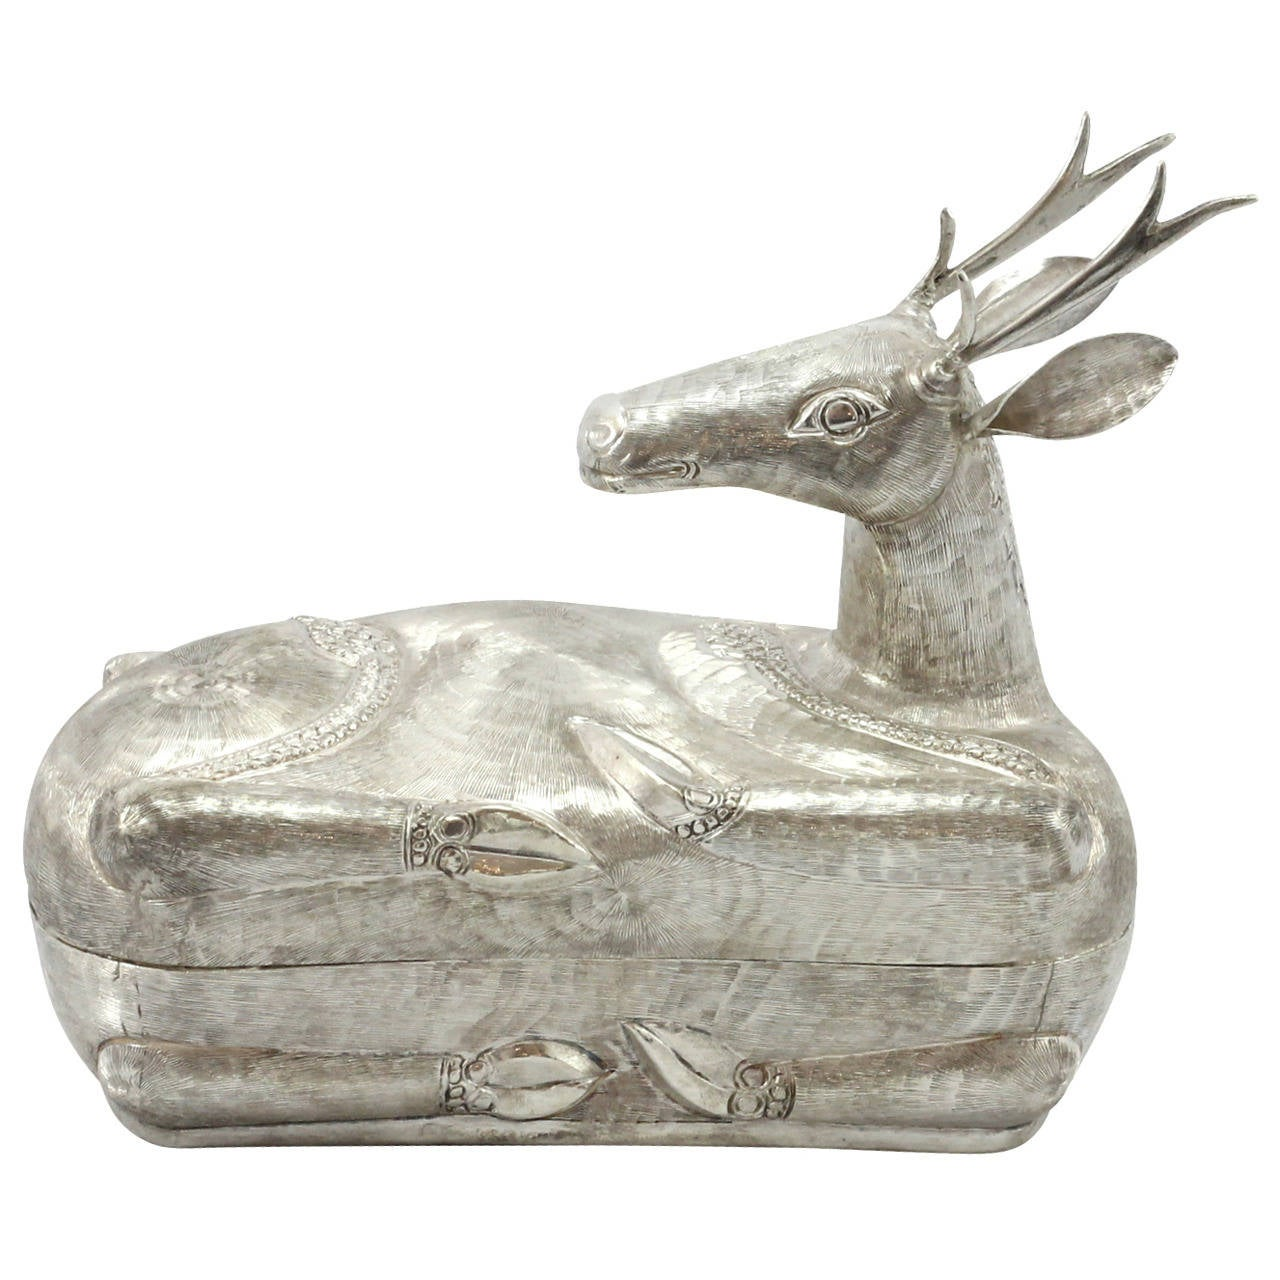 Cambodian Silver Deer Shaped Betel Nut Container